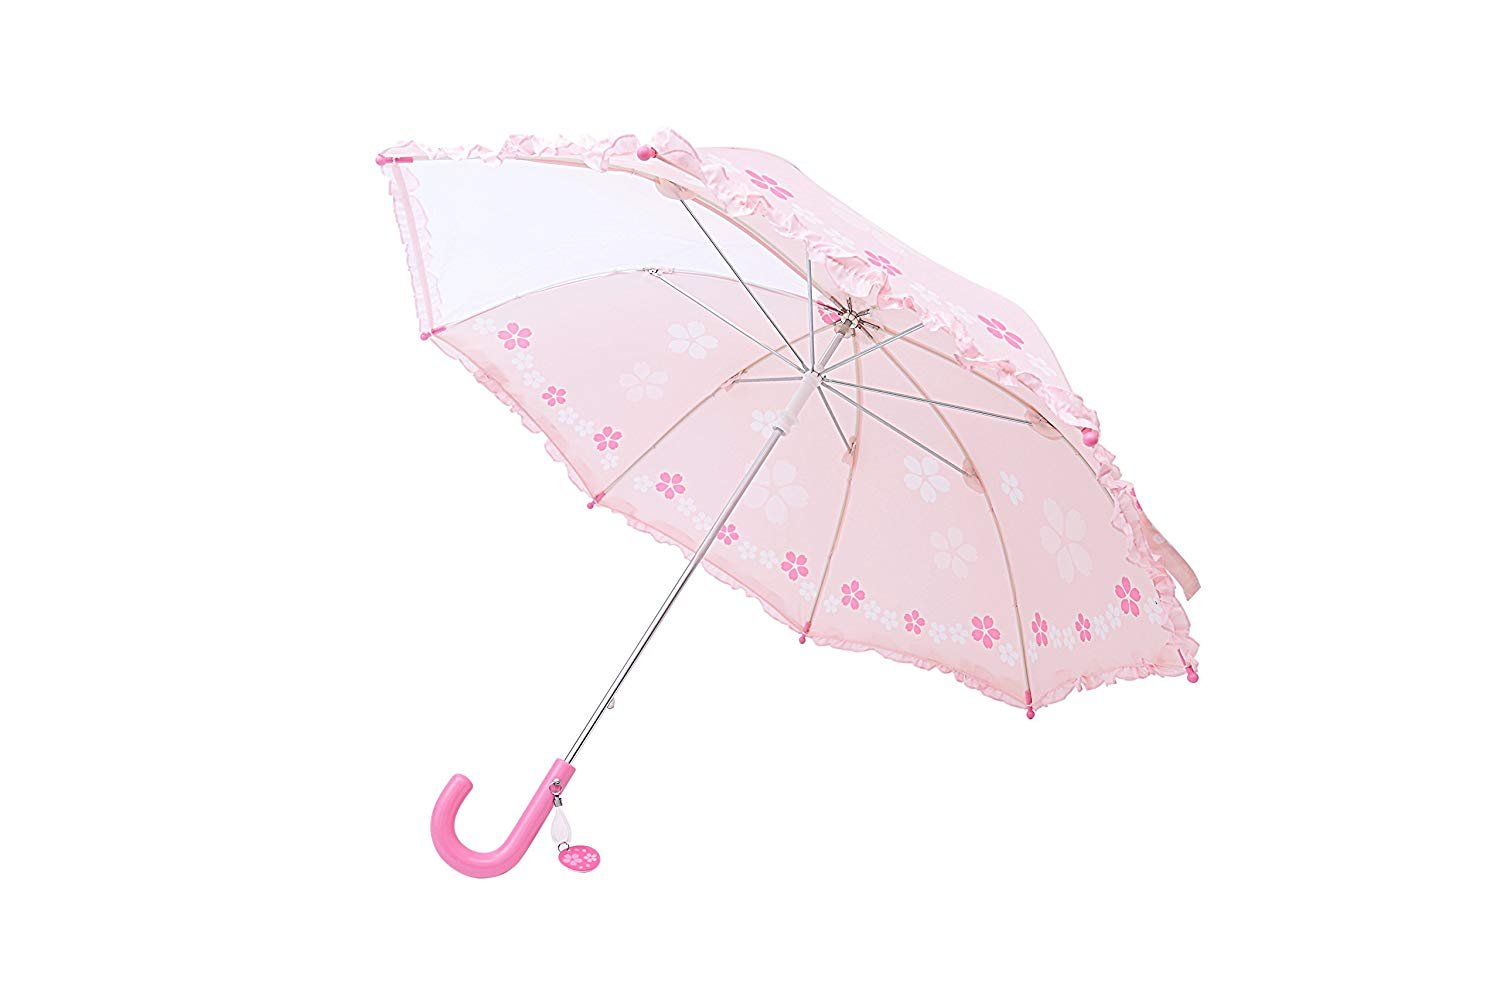 T.K.Design Umbrella for Girls Windproof Fiberglass Open Umbrella 19 Inch With Safety Open and Close